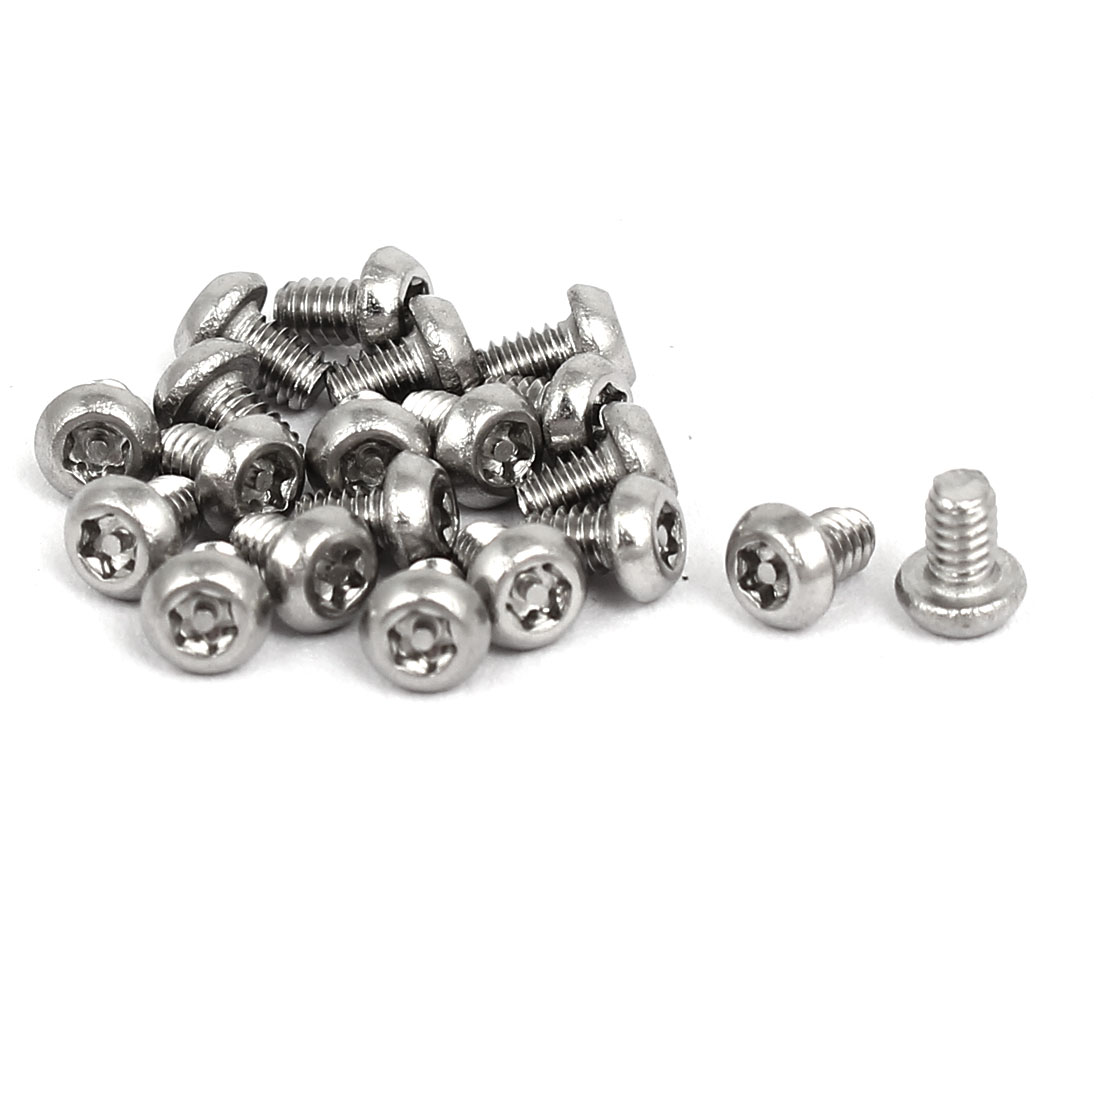 M2x3mm 304 Stainless Steel Button Head Torx Security Machine Screws 20pcs